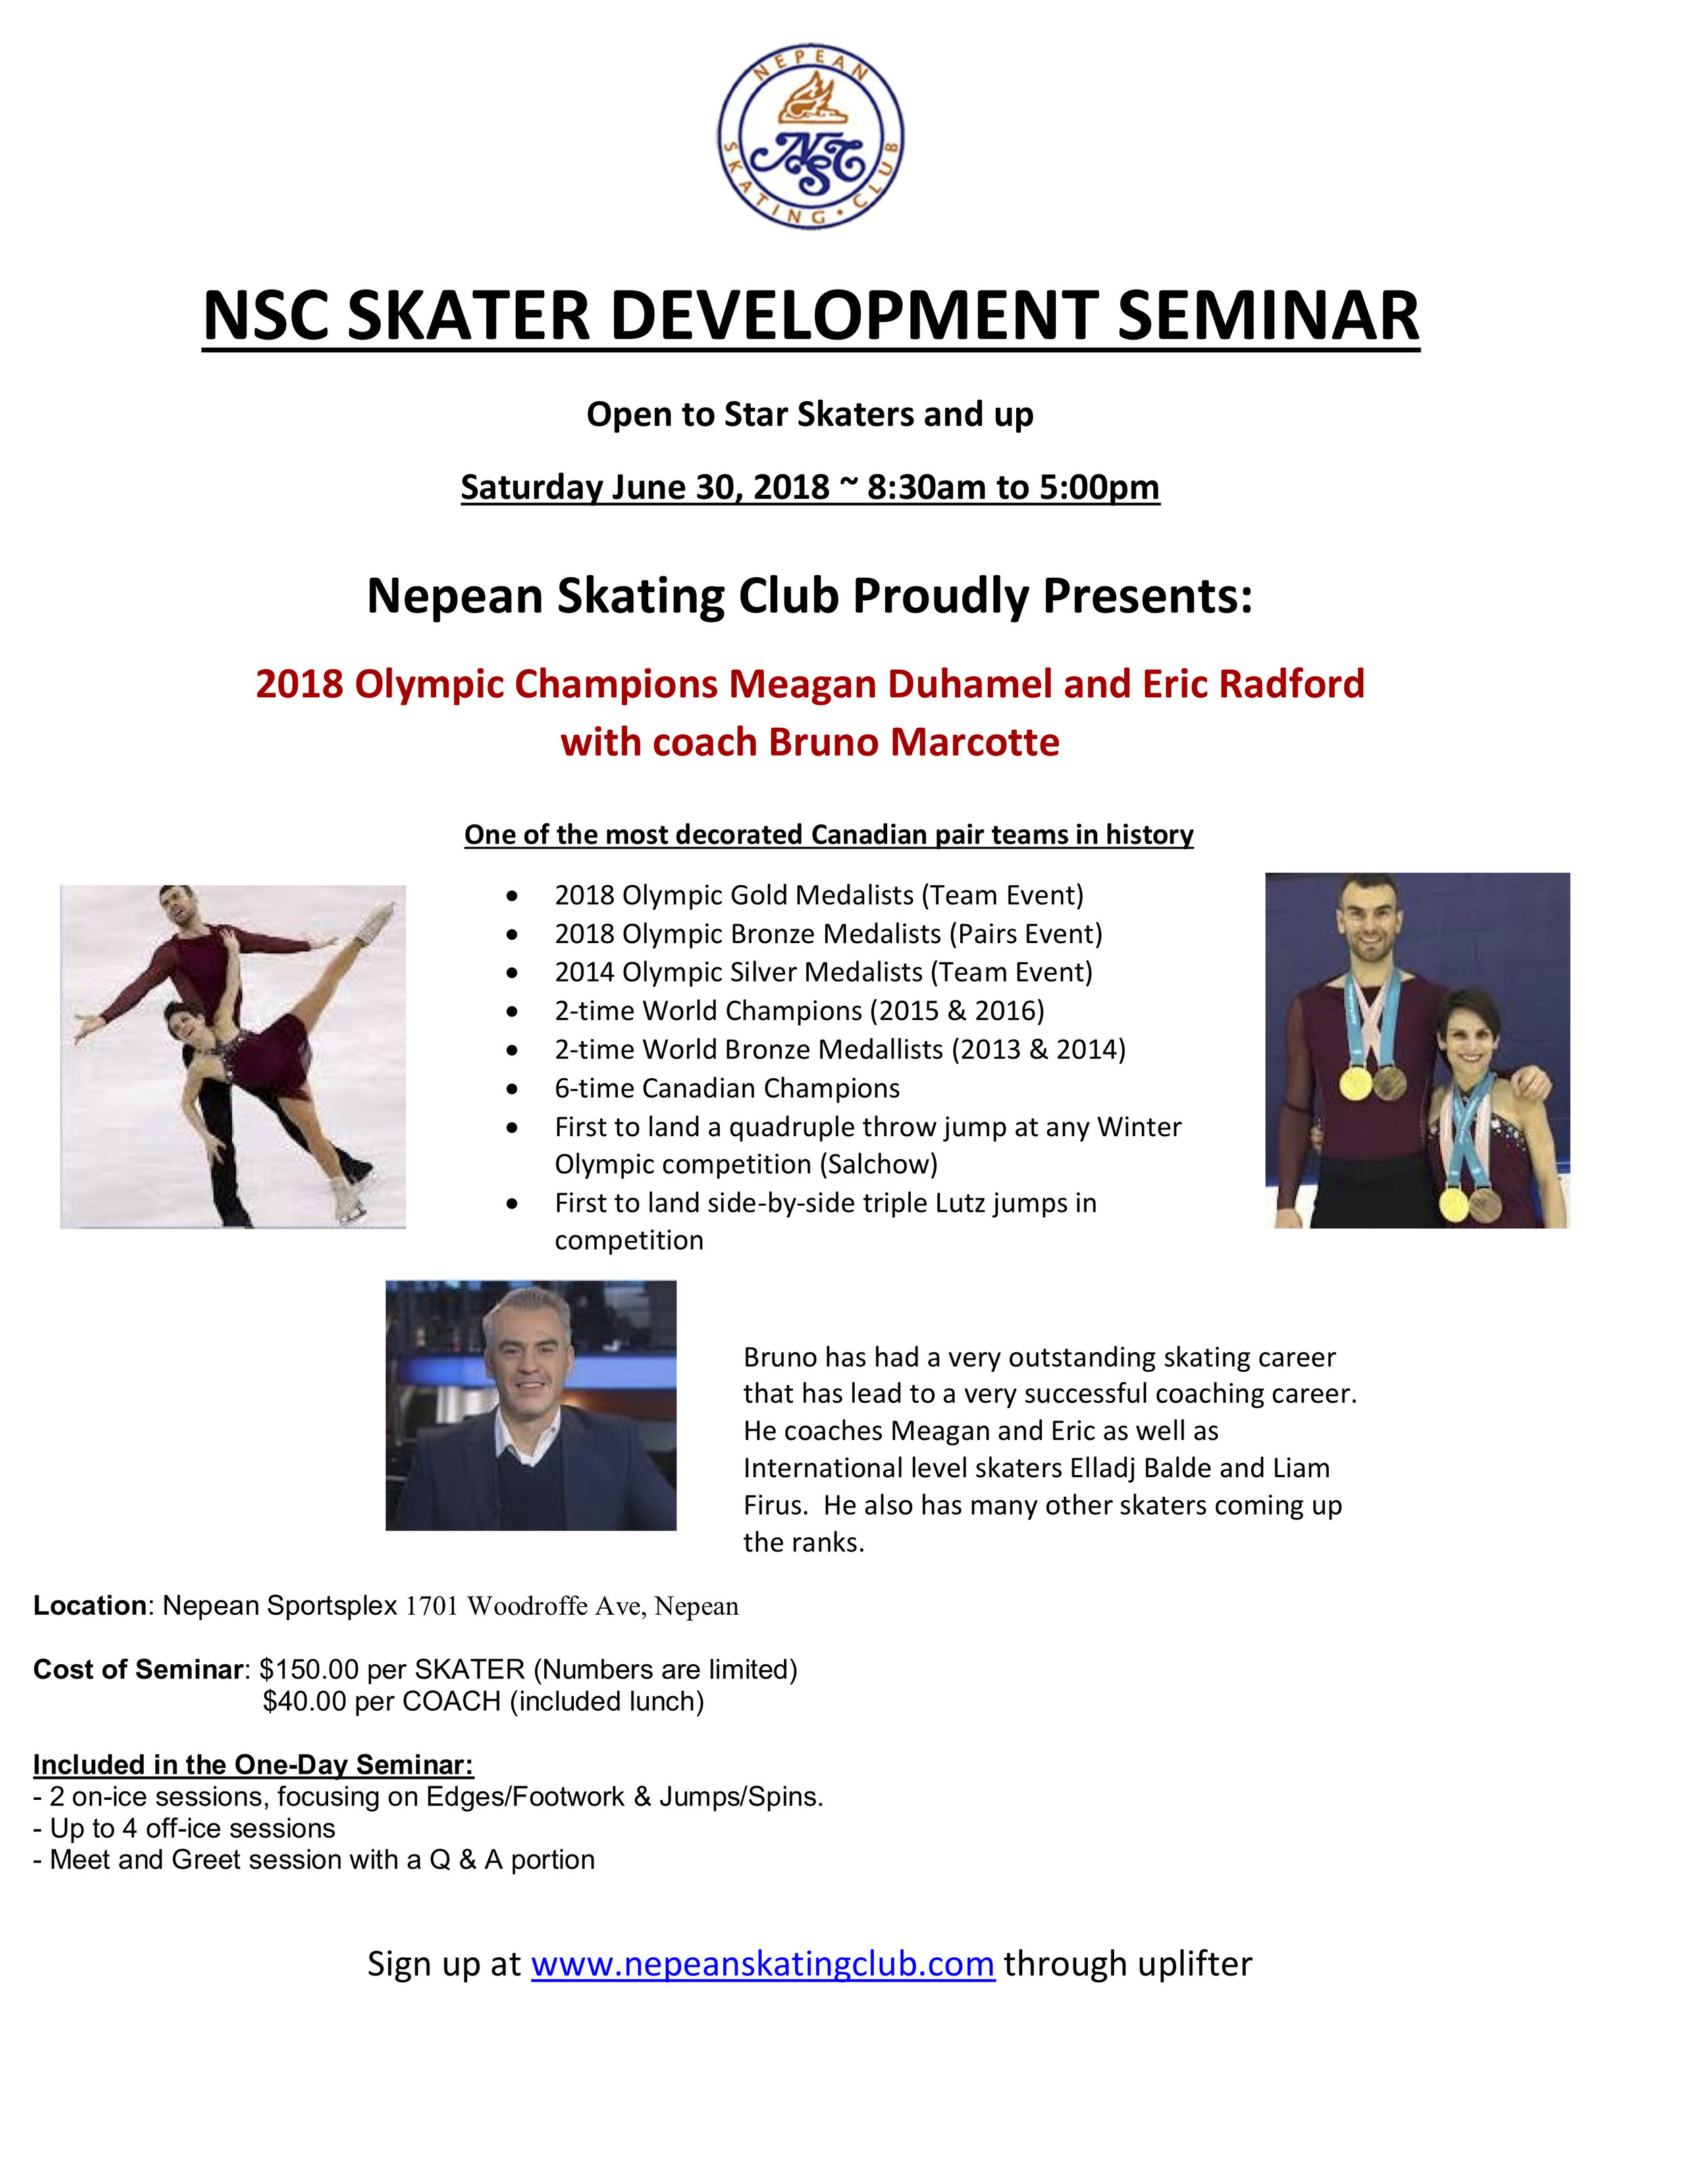 Skating Seminar Poster out of club.jpg